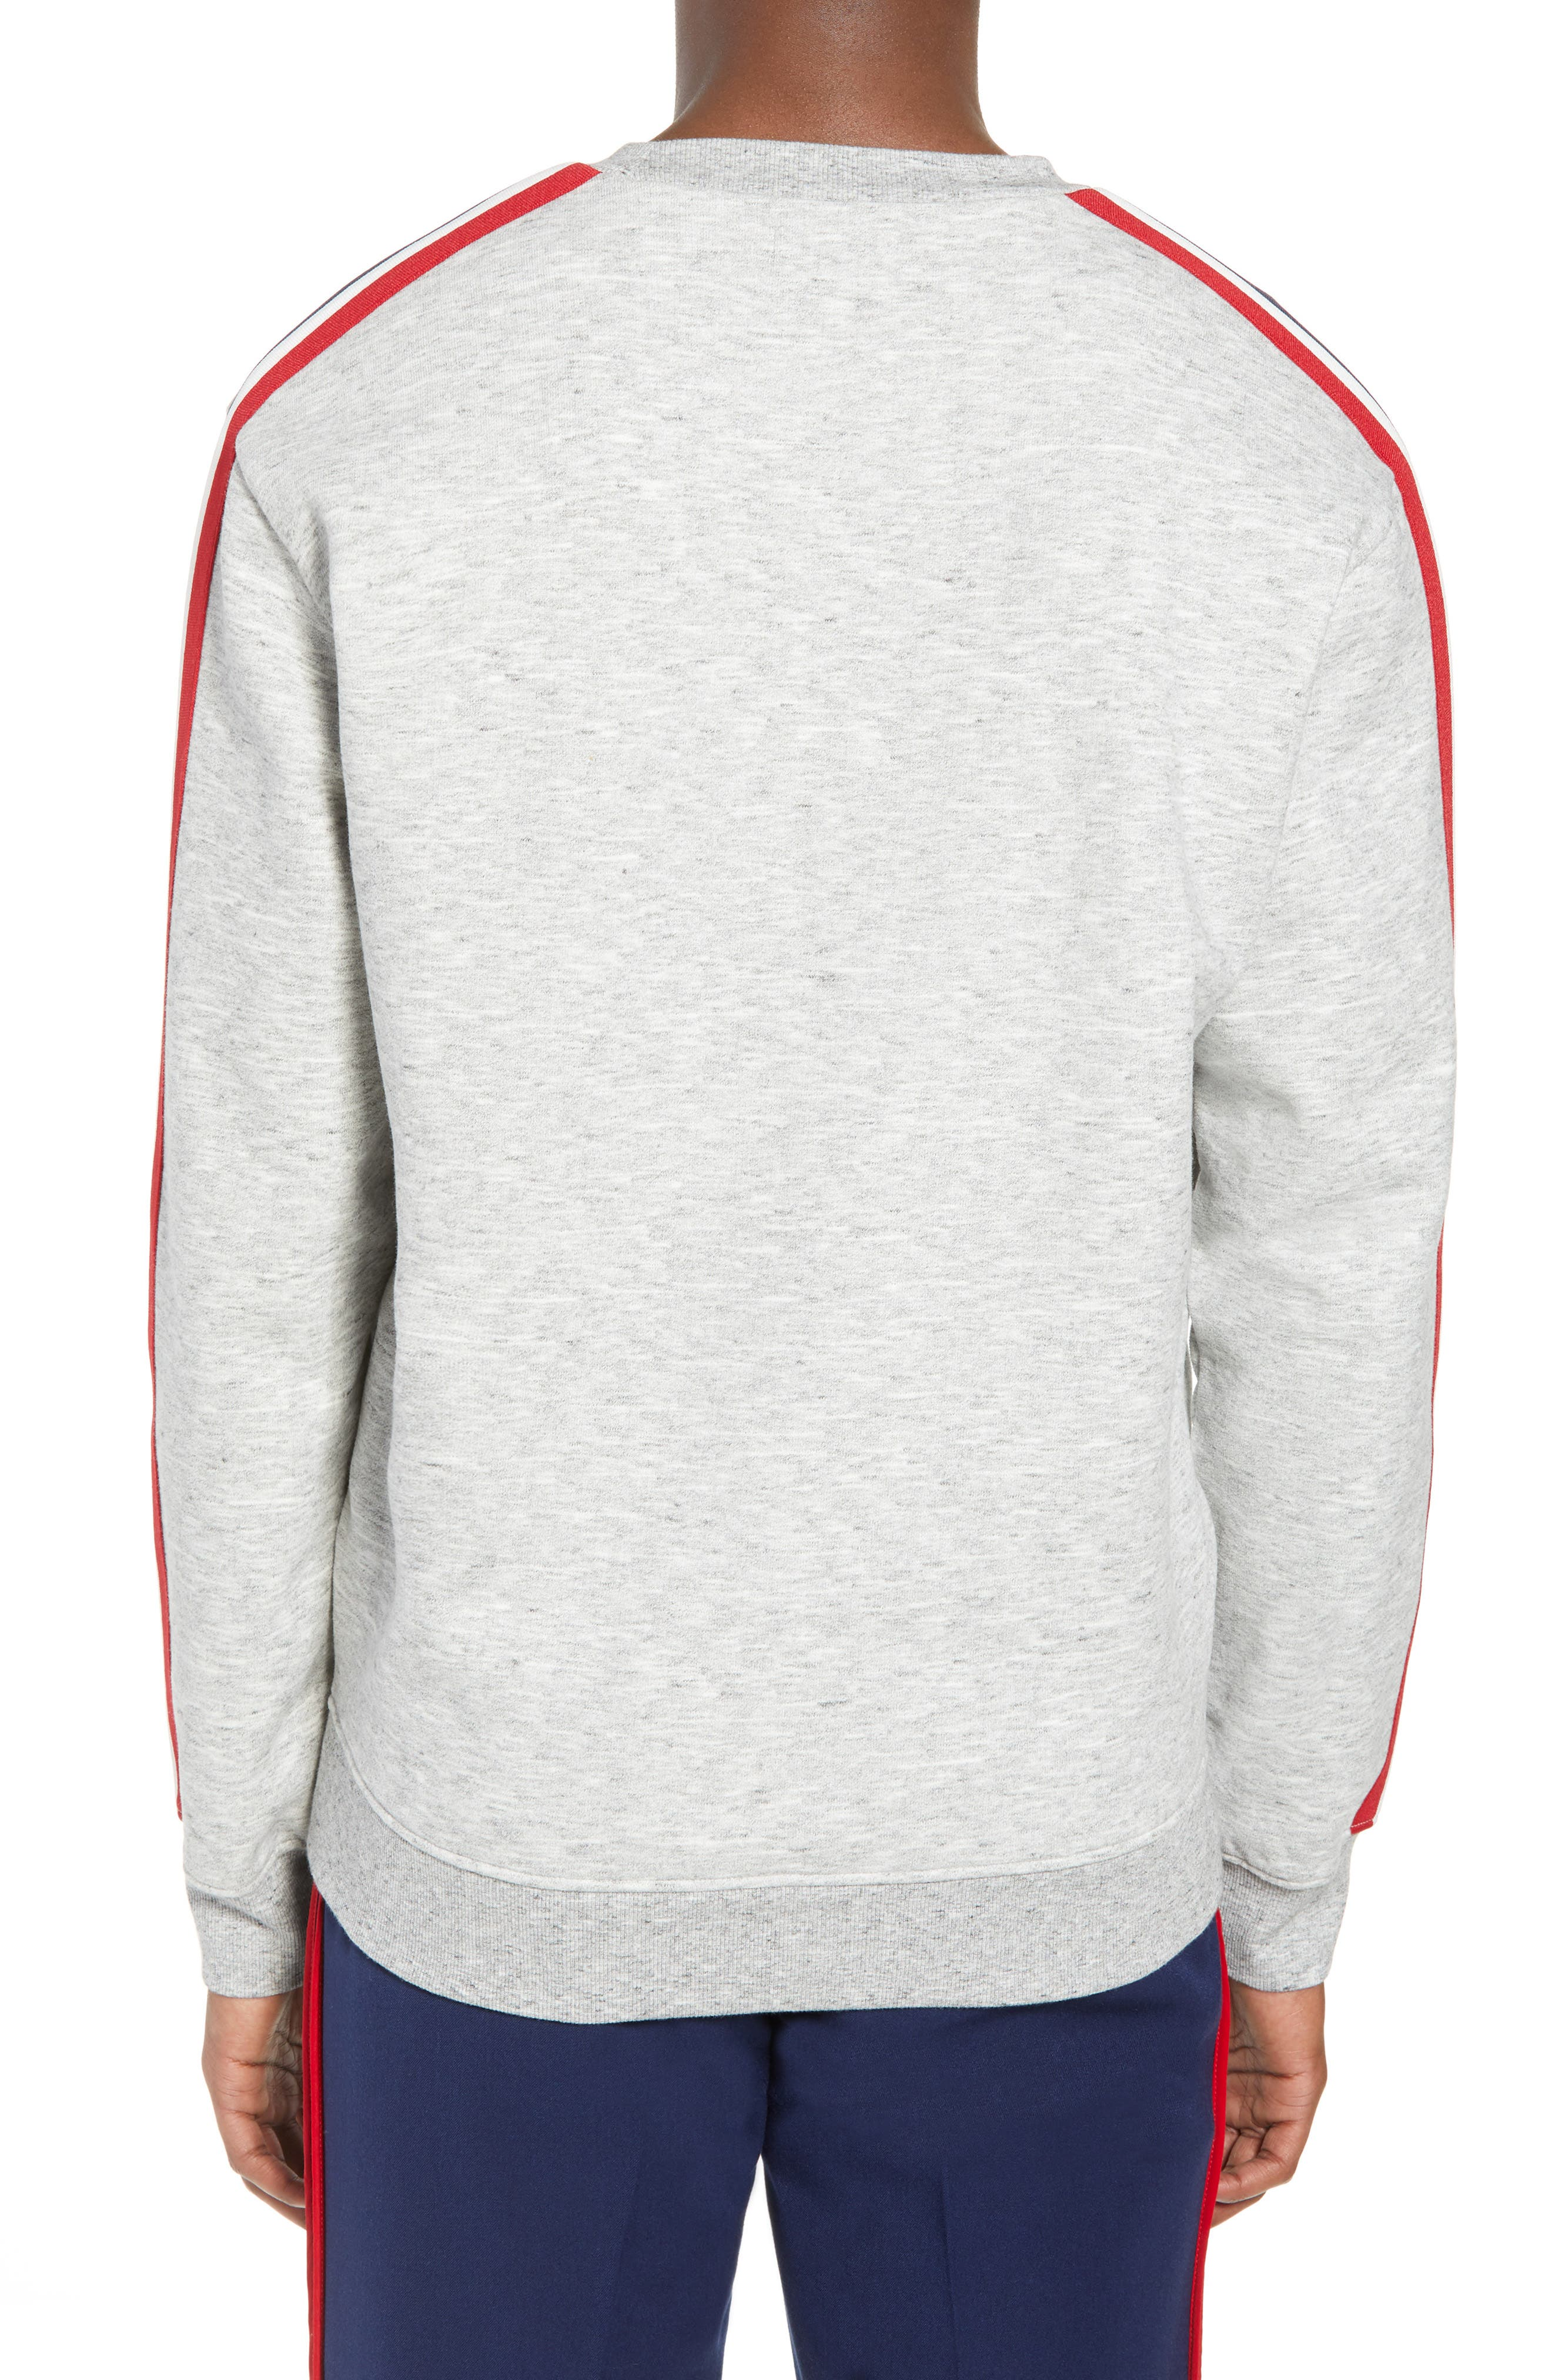 French Stripe Tape Sweatshirt,                             Alternate thumbnail 2, color,                             050